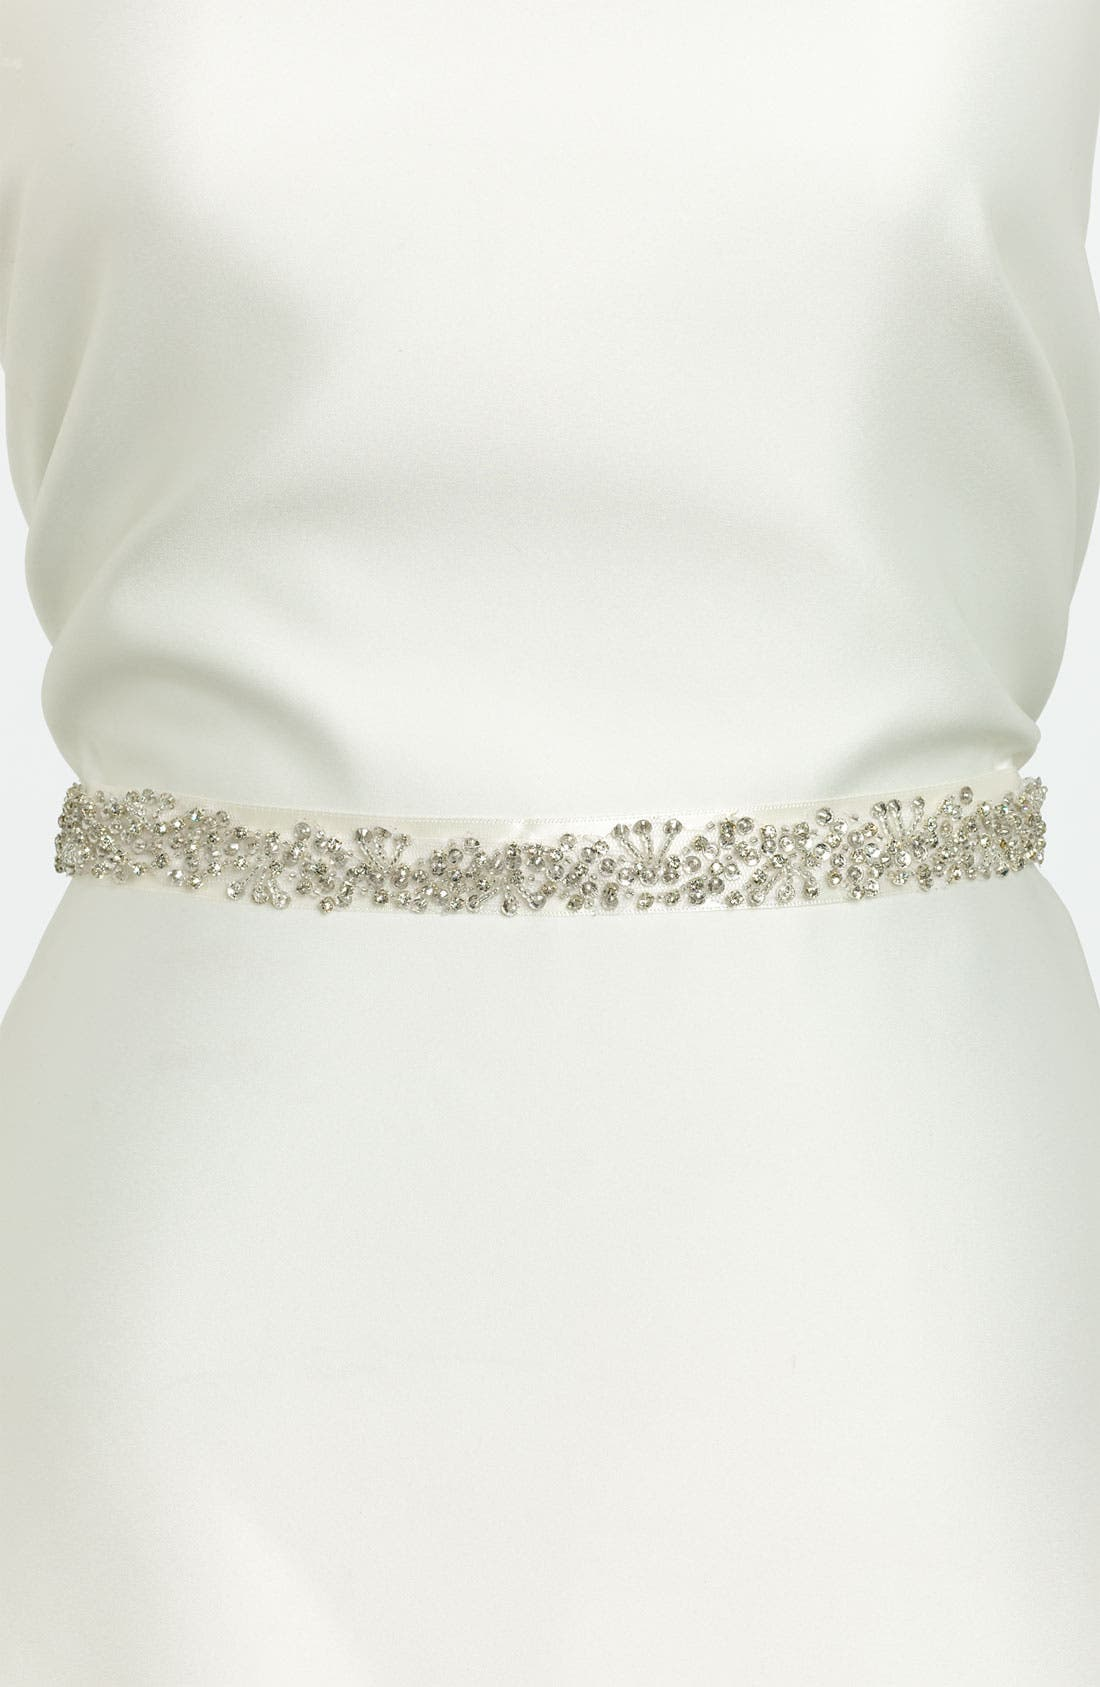 Main Image - Nina Ornate Beaded Sash